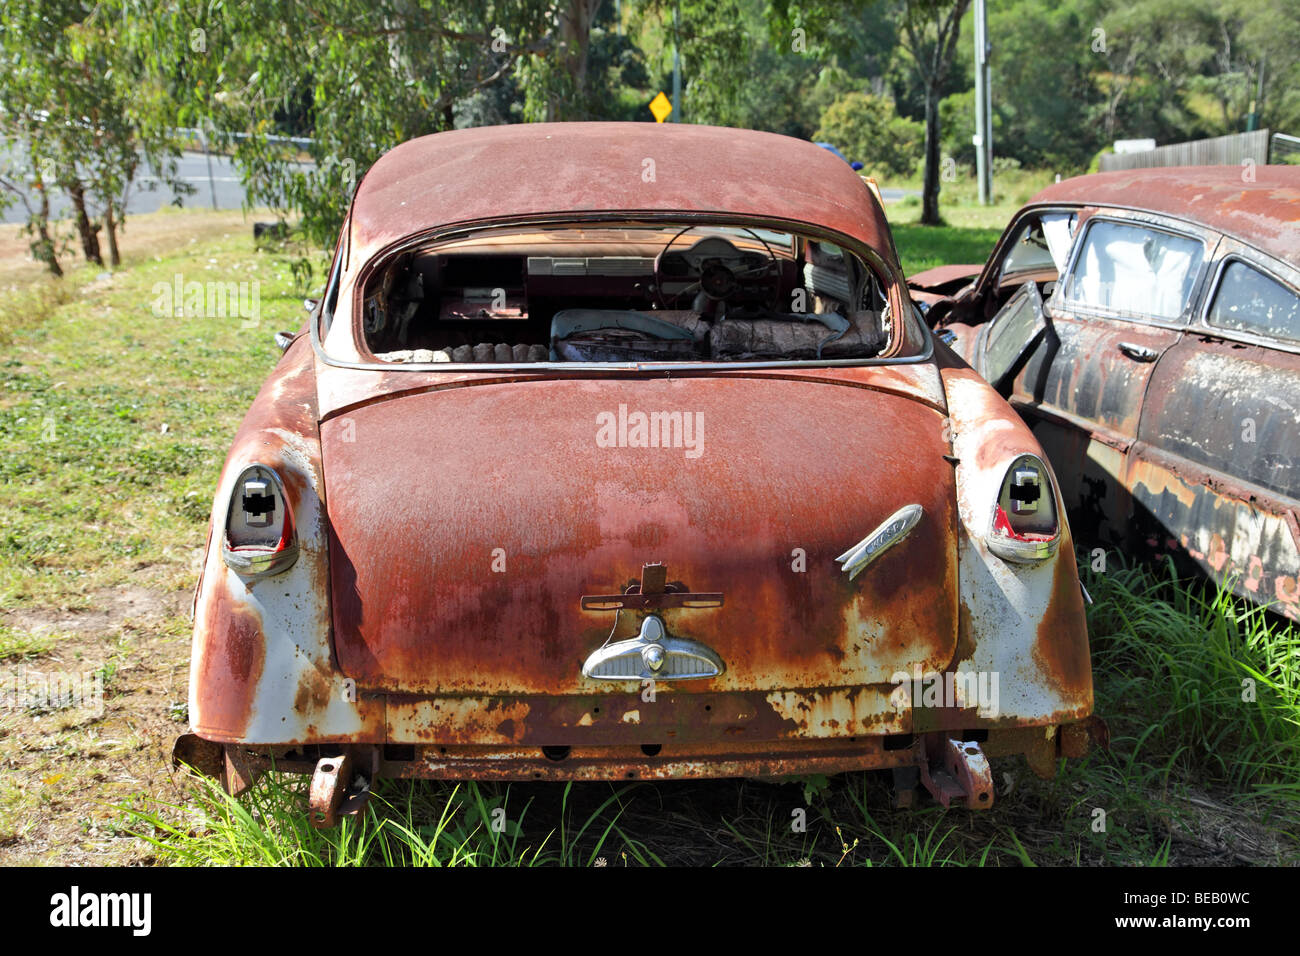 Rusted old cars in a grassy field Hudson Super Swift Stock Photo ...